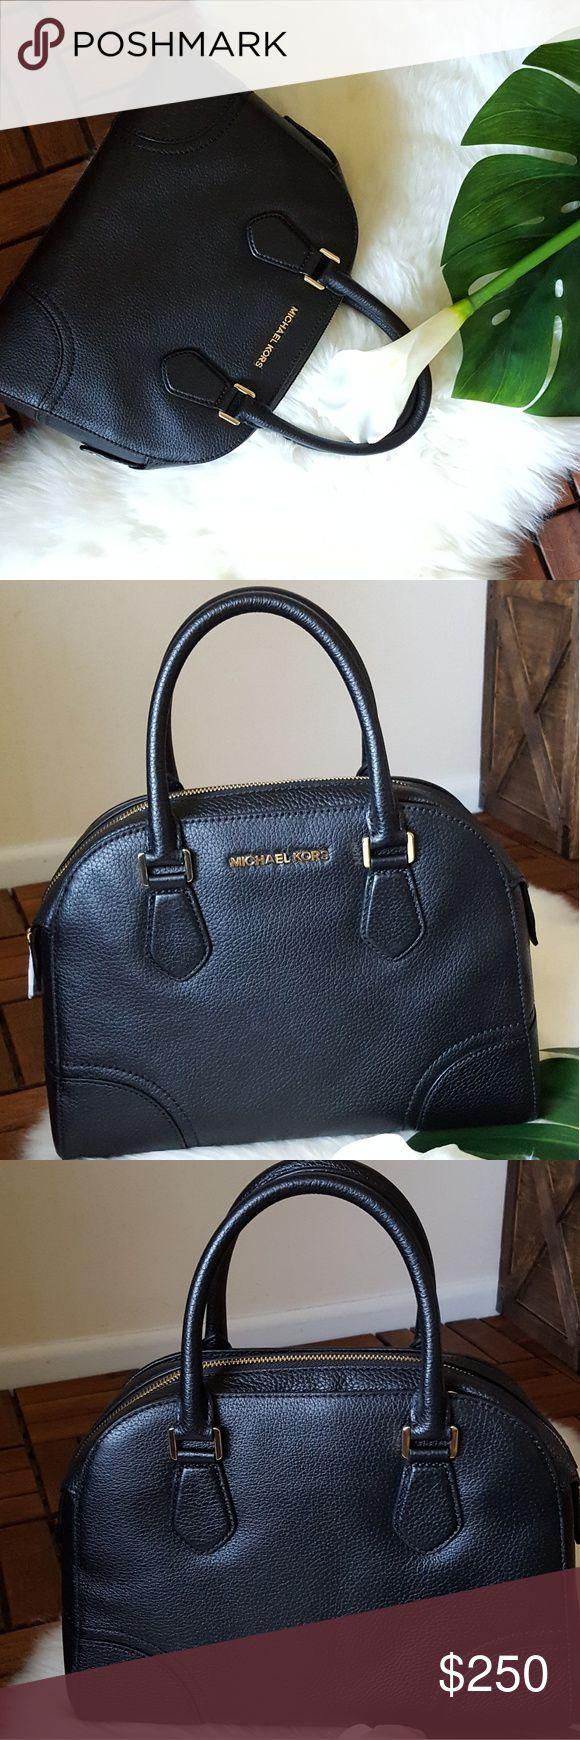 """Michael Kors Bowling Bag NWT - 100% AUTHENTIC   * Gold tone hardware  * Gold MK circle medallion  * Top zip closure  * Interior 1 zip pocket and 4 slip pockets  * Removable adjustable long leather strap with appx. 22"""" drop  * Dust bag not included Michael Kors Bags Crossbody Bags"""